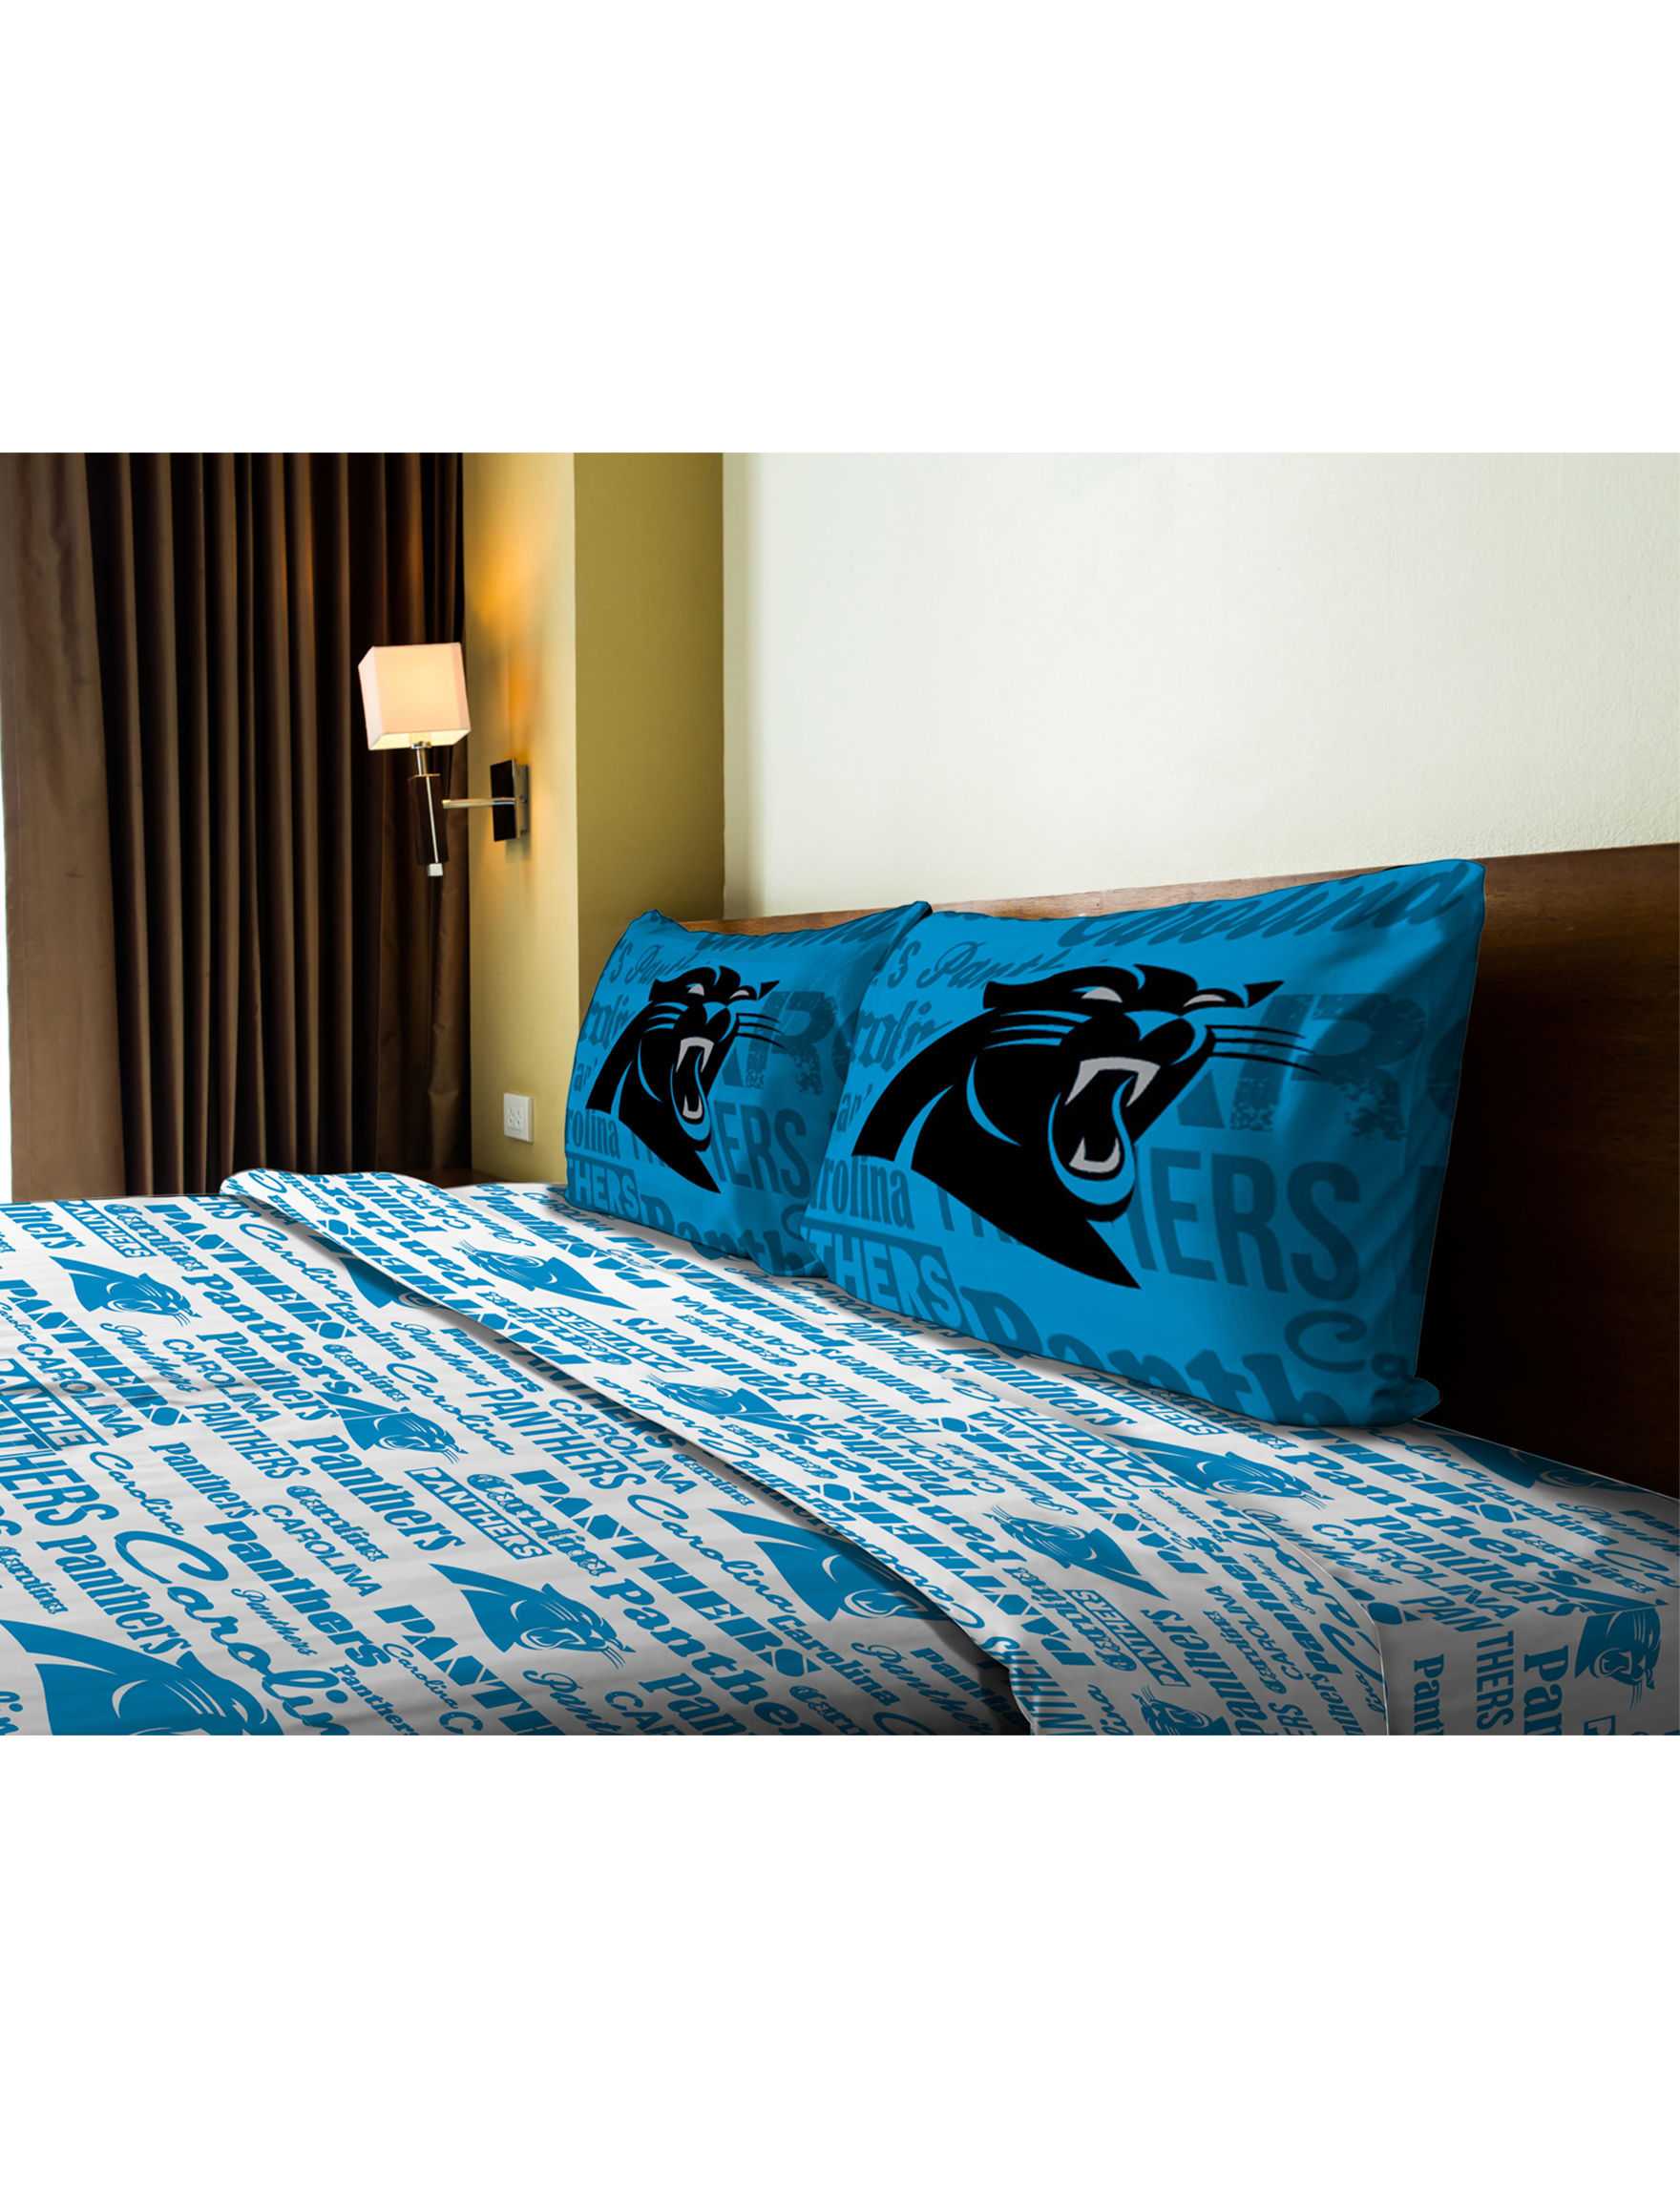 The Northwest Company Blue / White / Black Sheets & Pillowcases